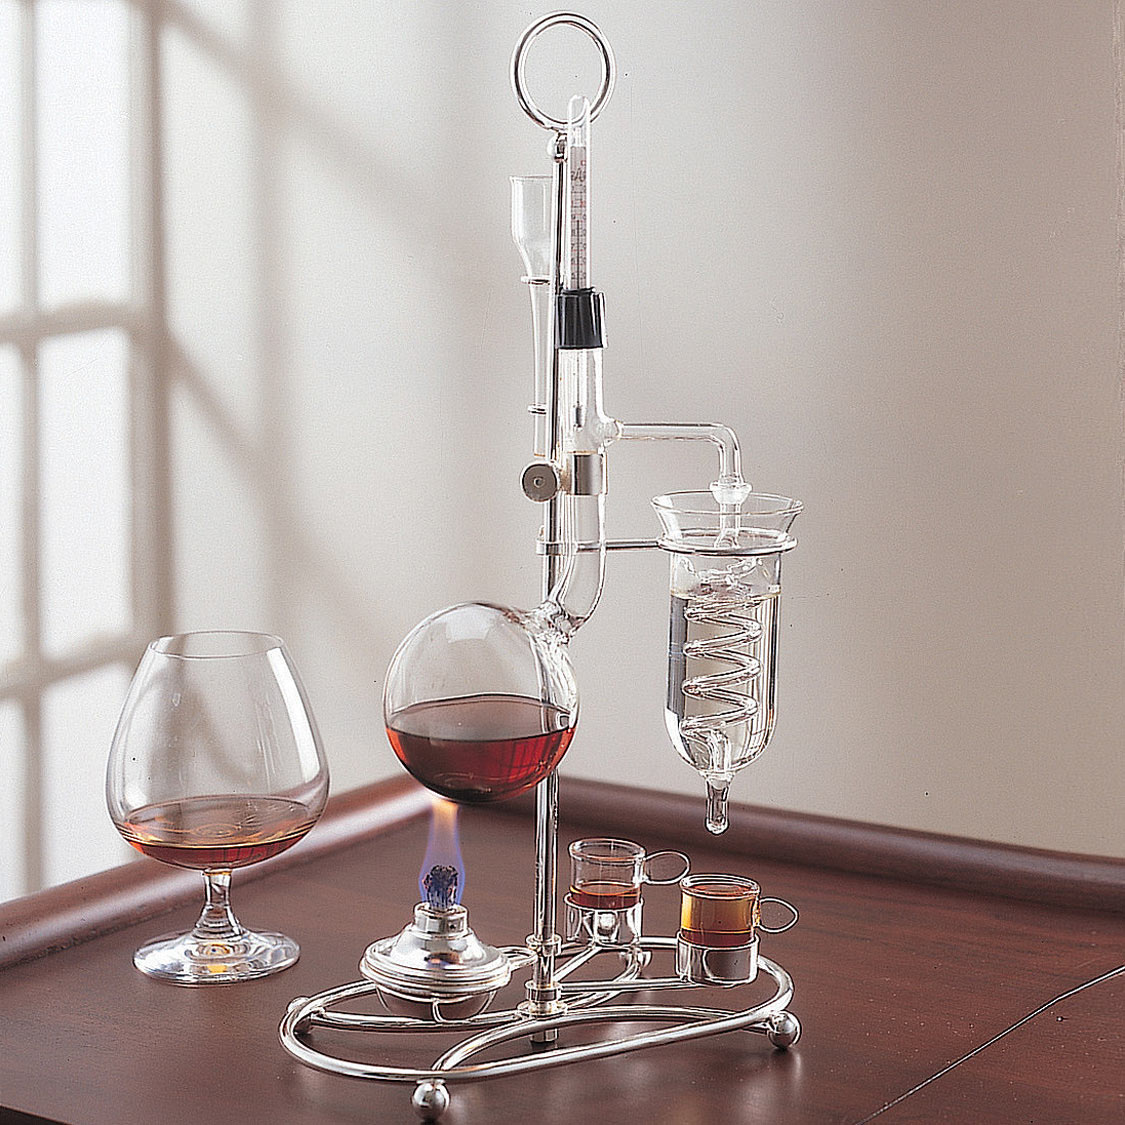 Miniature Distilling Machine Turn Wine Into Brandy